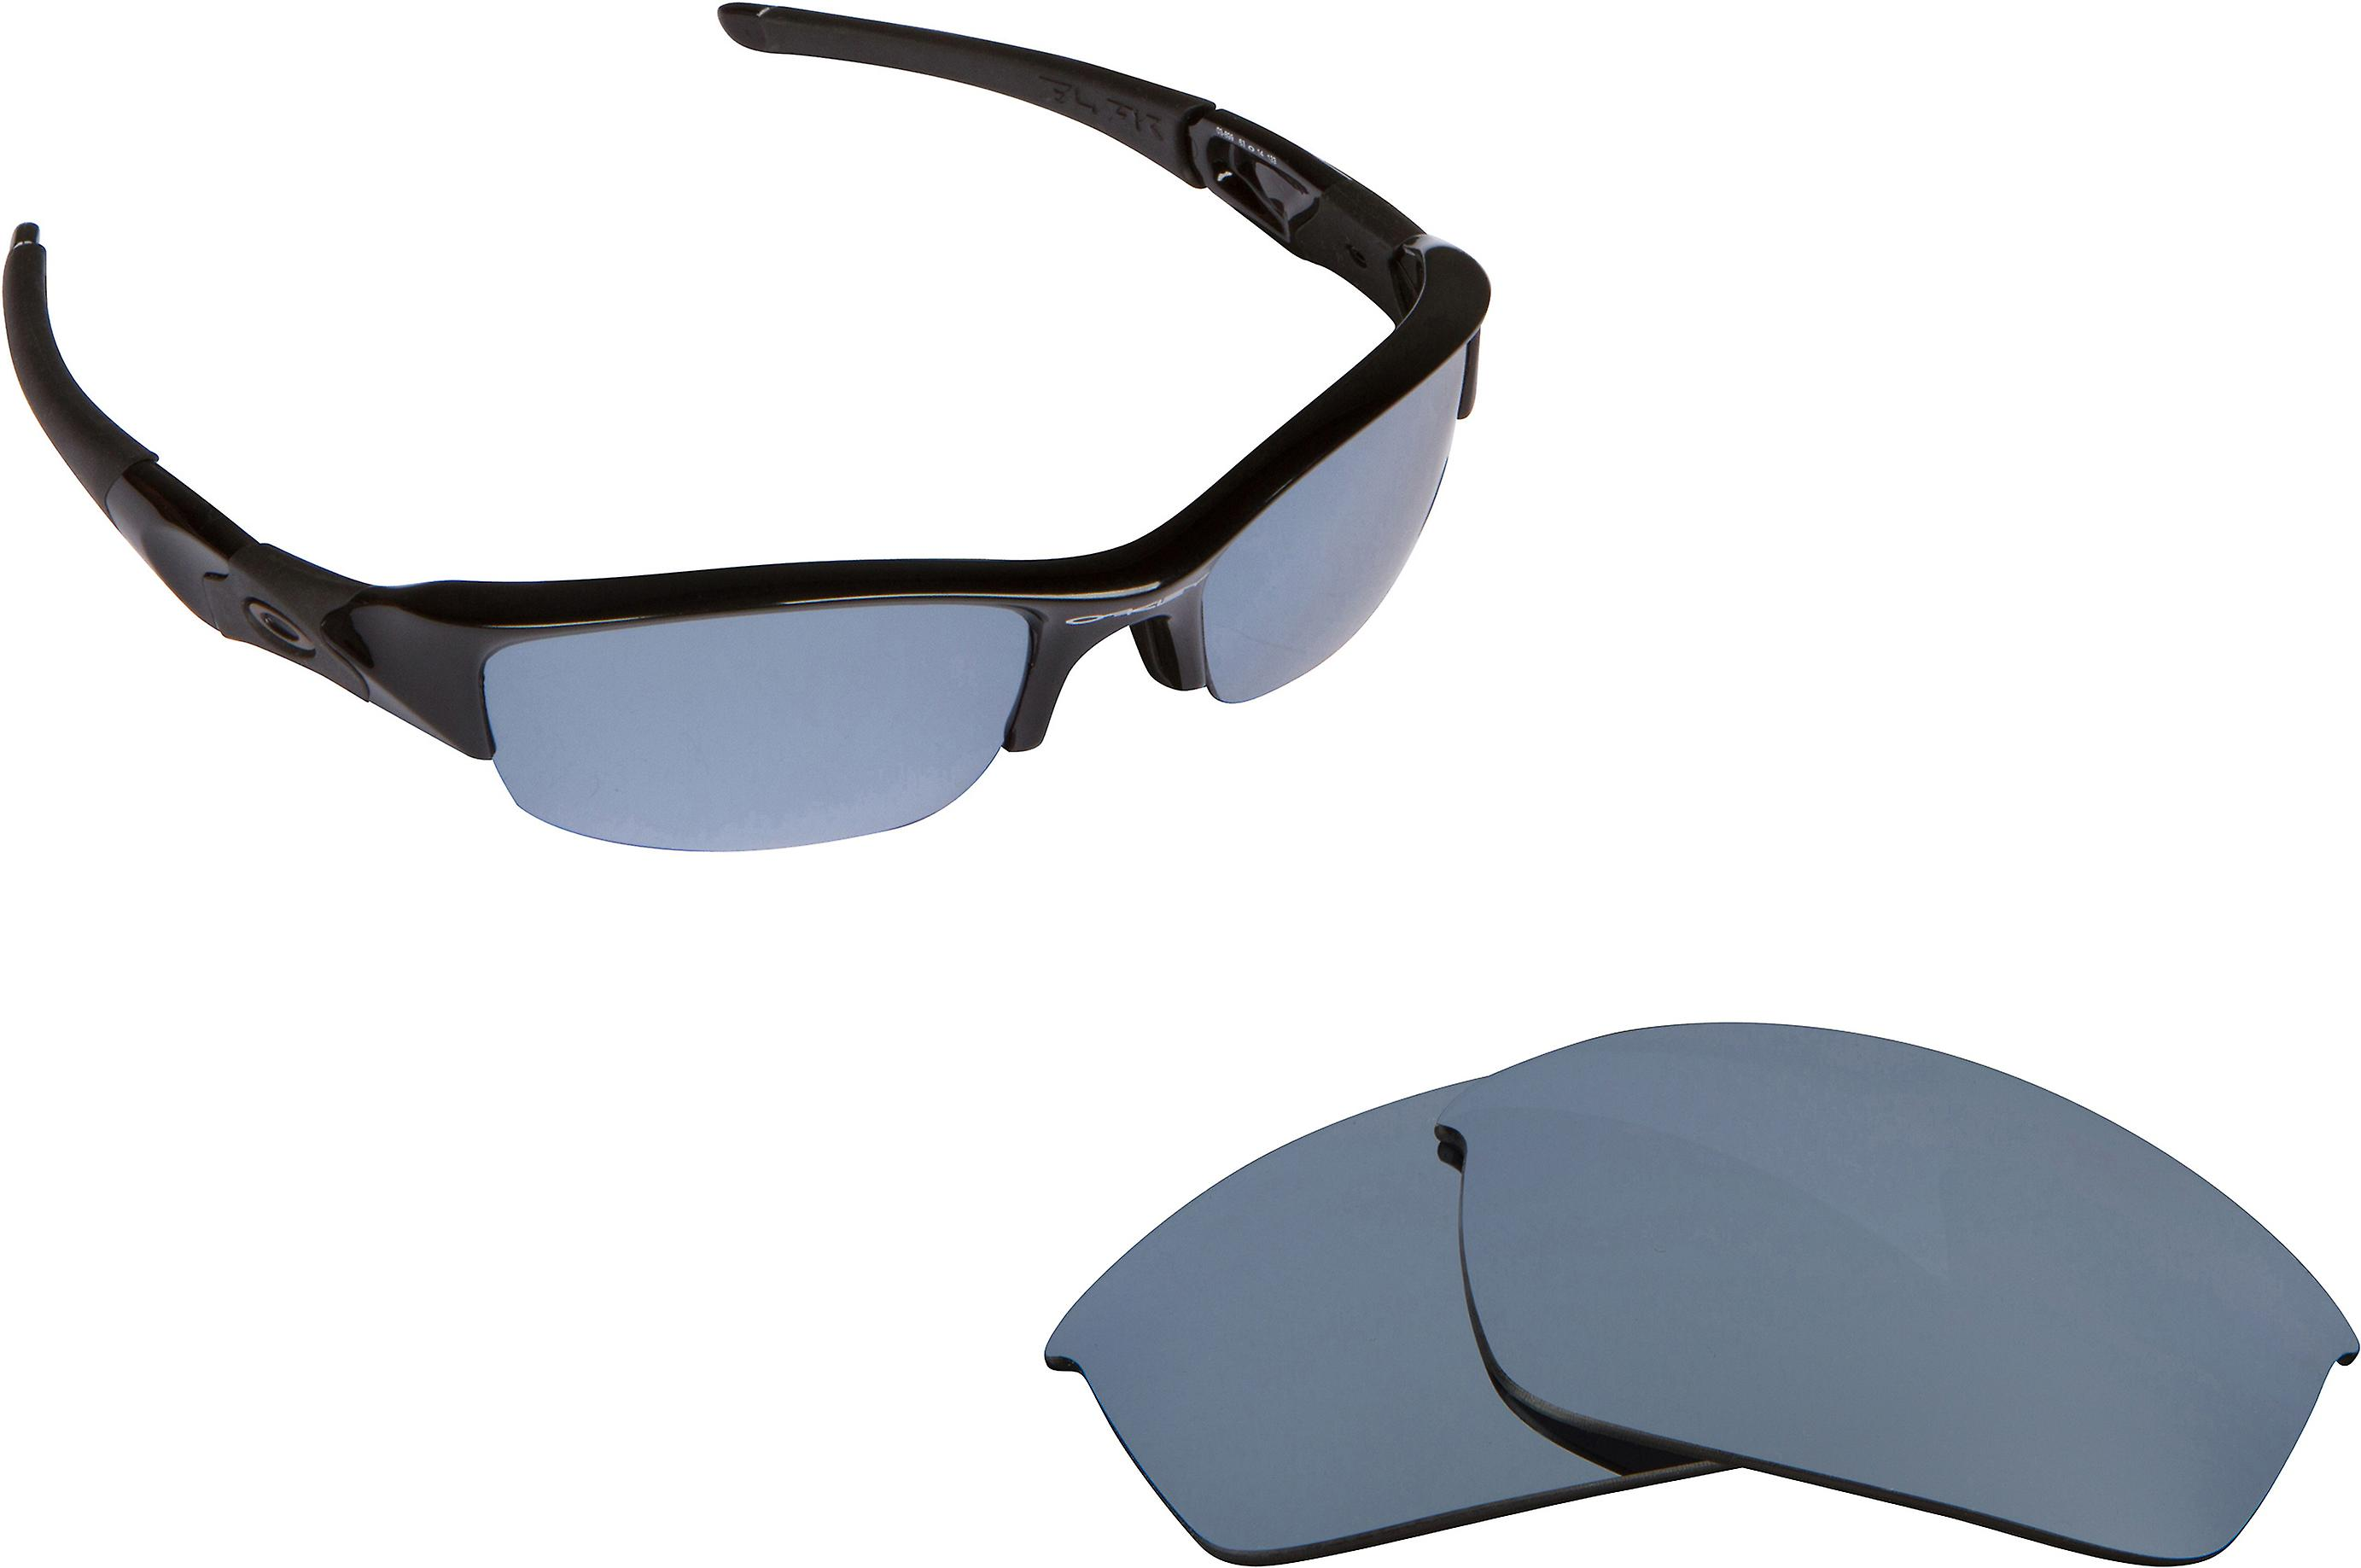 a140bb22a6 FLAK JACKET Replacement Lenses Polarized Silver by SEEK fits OAKLEY  Sunglasses